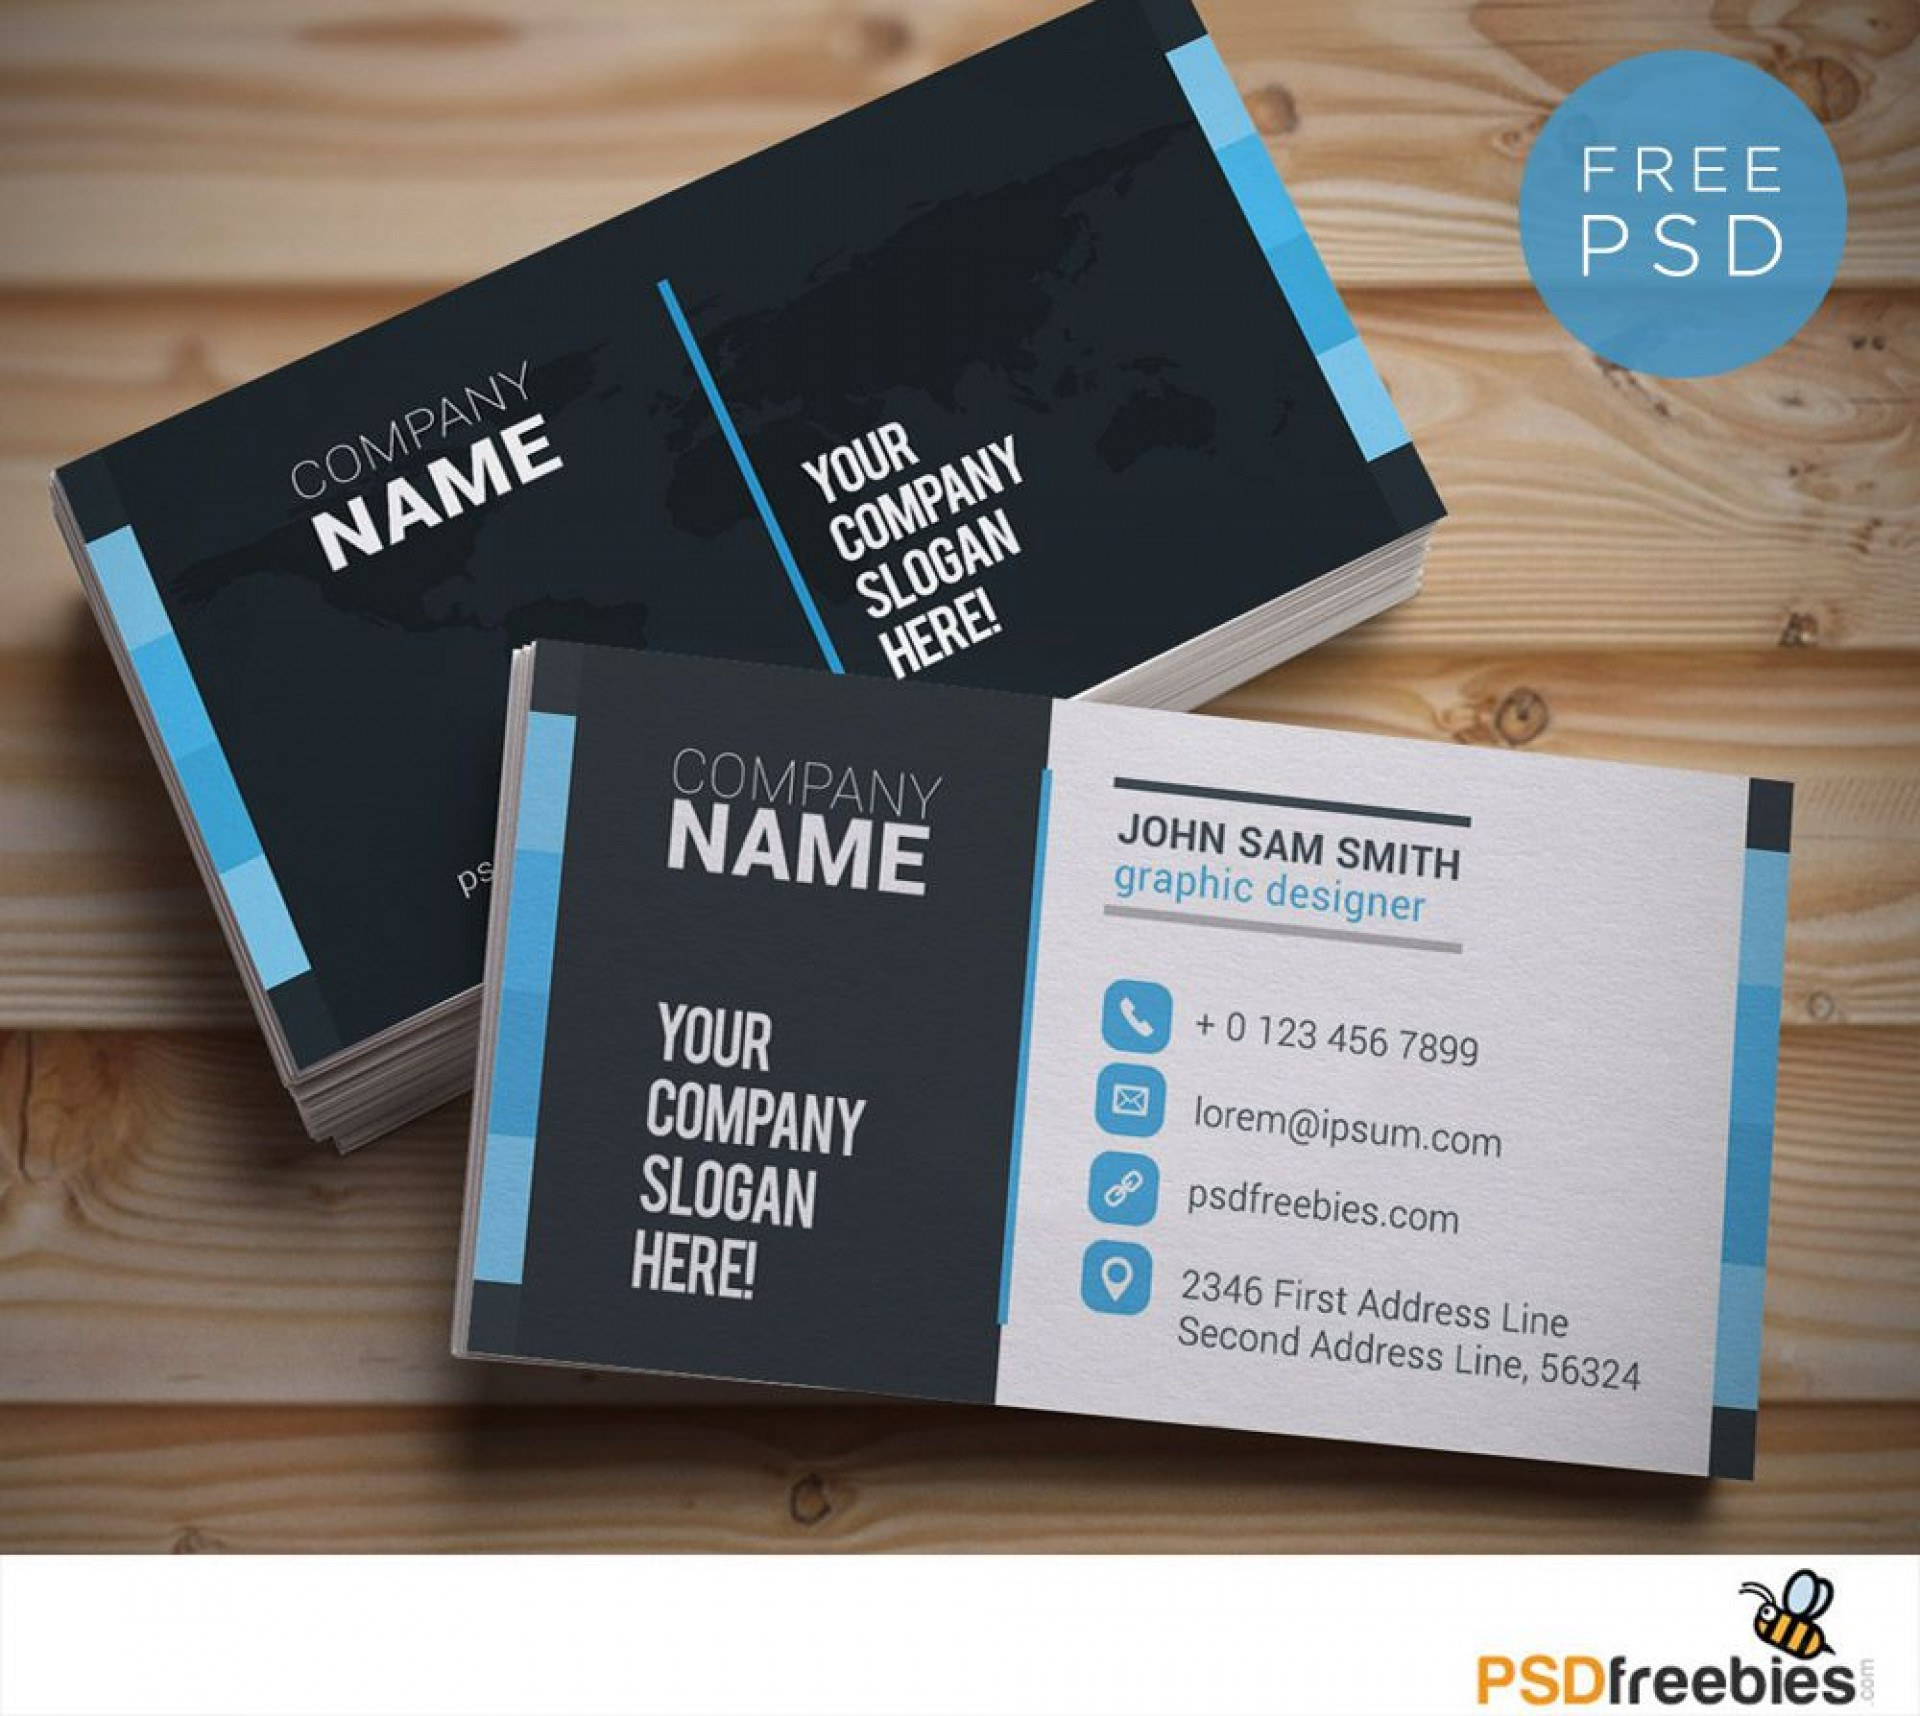 004 Stupendou Download Busines Card Template Highest Quality  For Microsoft Publisher Adobe Illustrator Visiting Psd1920